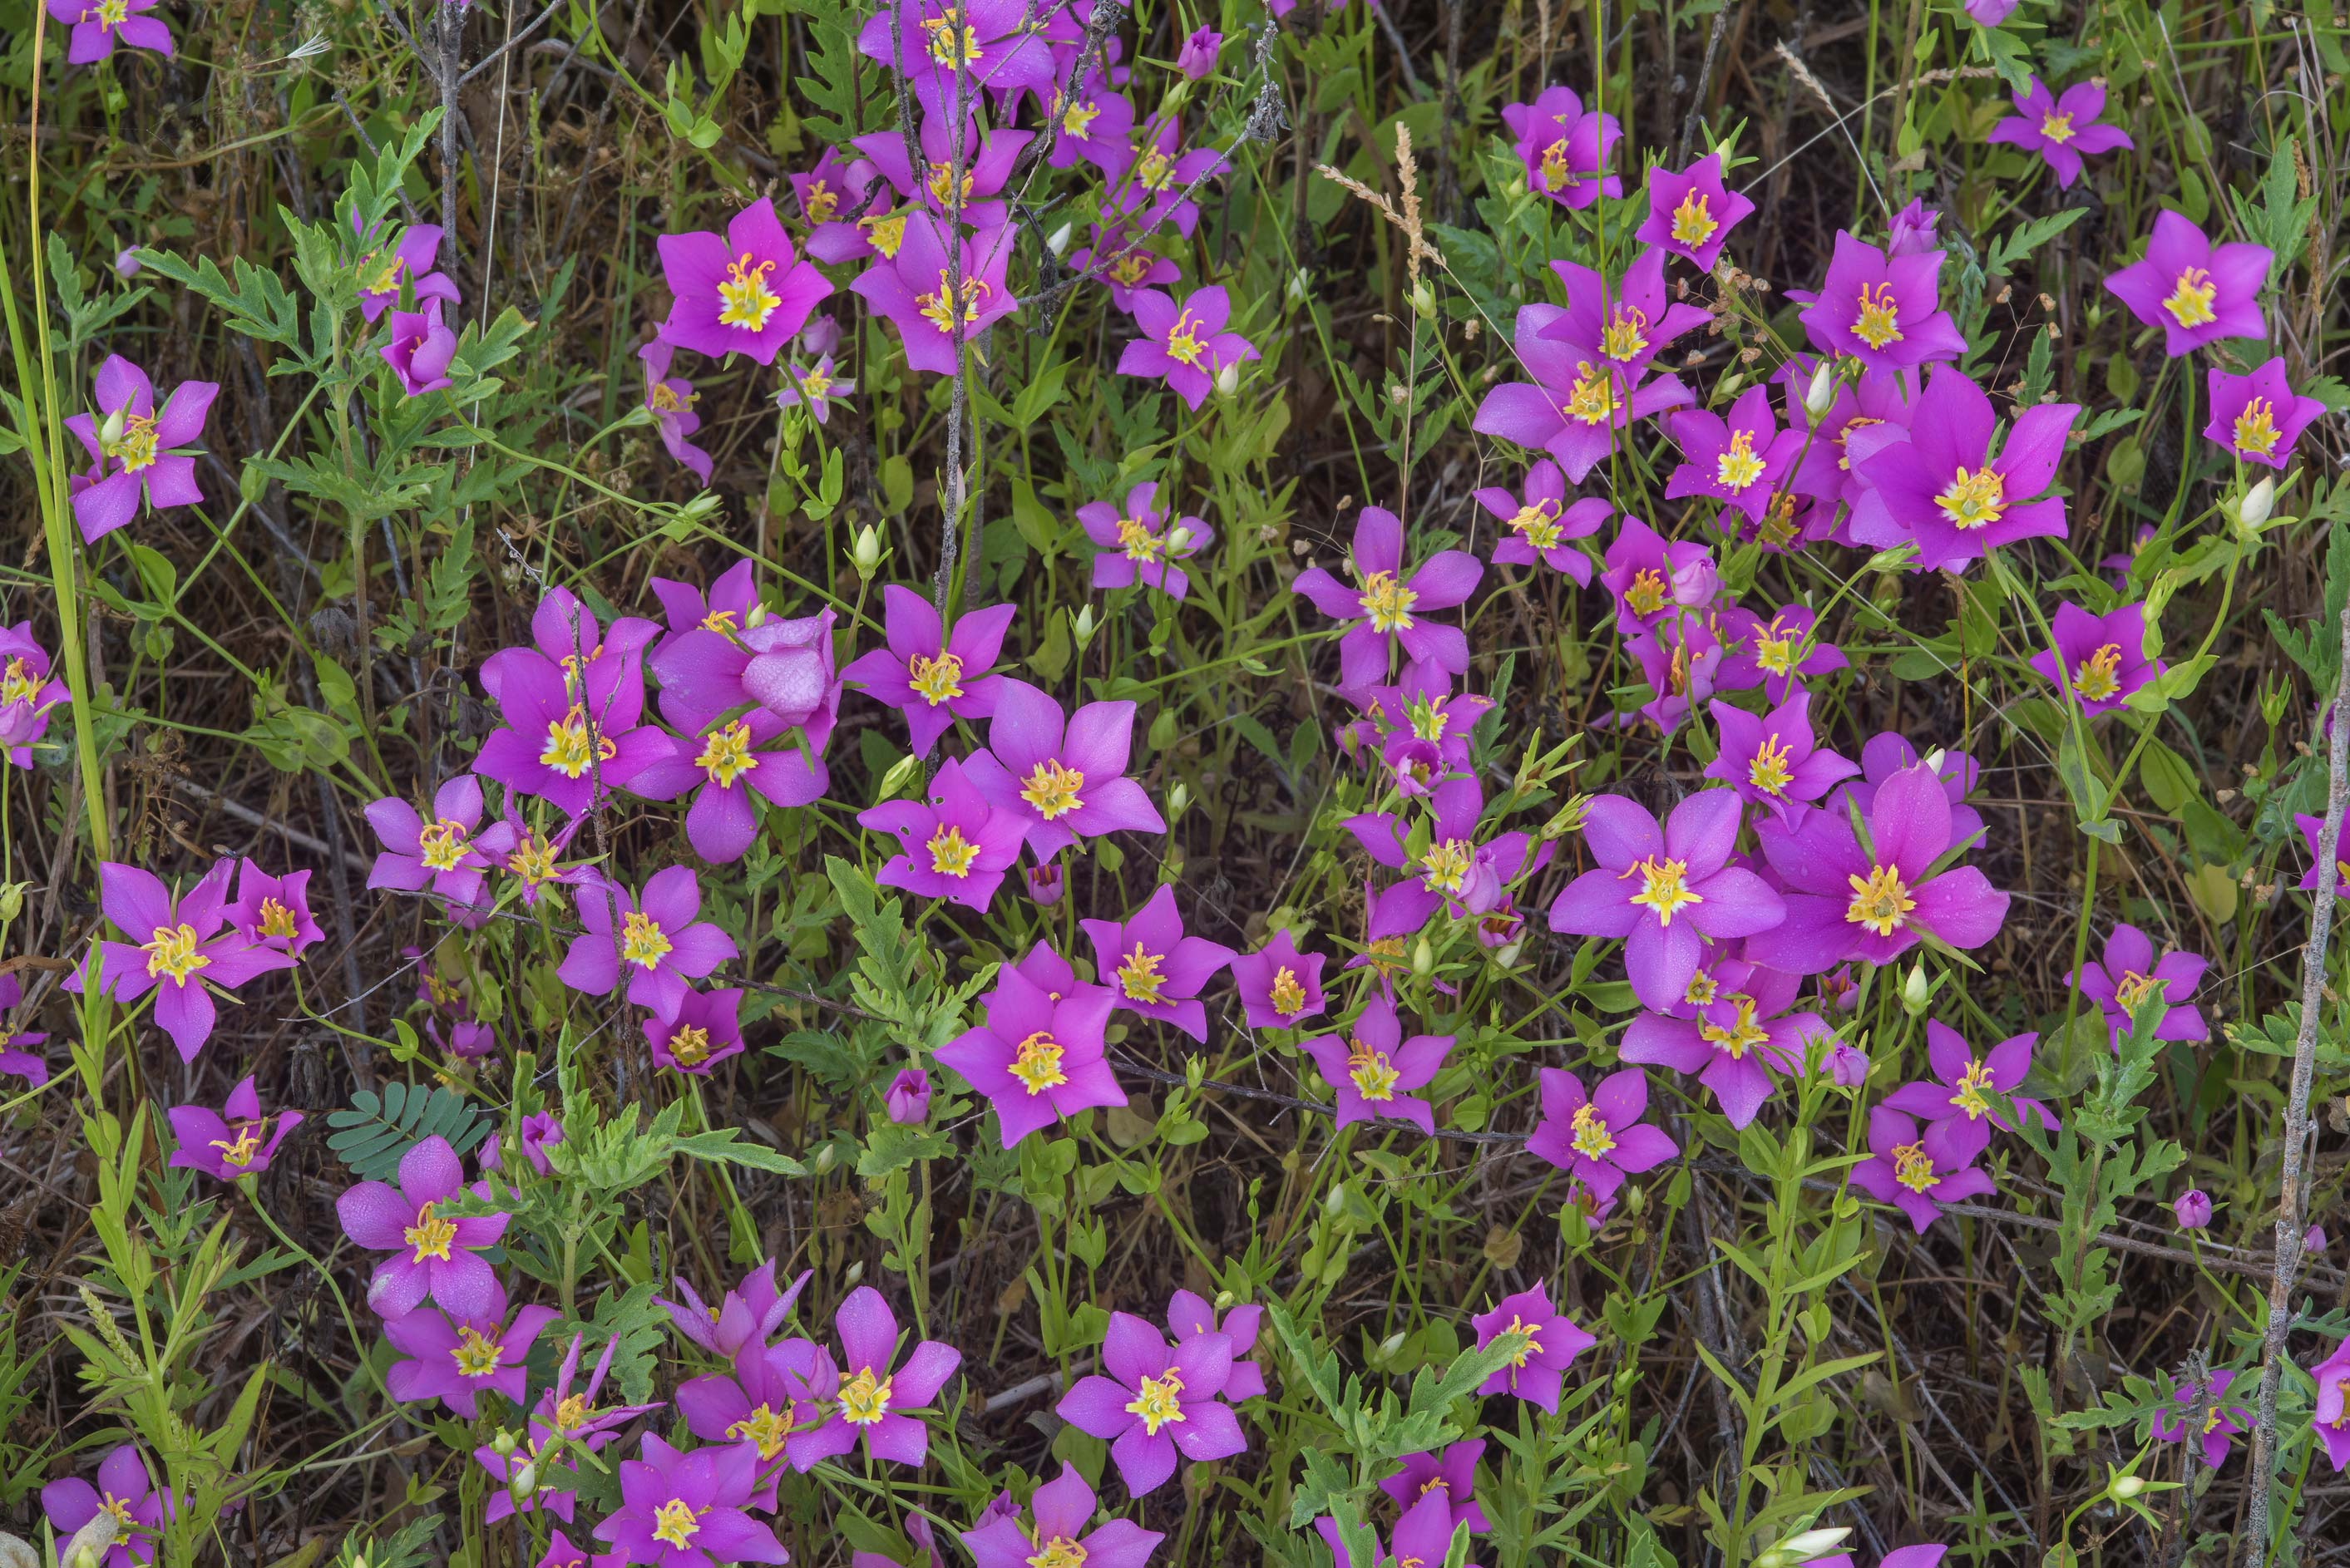 Flowers of Meadow pink (Sabatia campestris) in Lake Bryan Park. Bryan, Texas